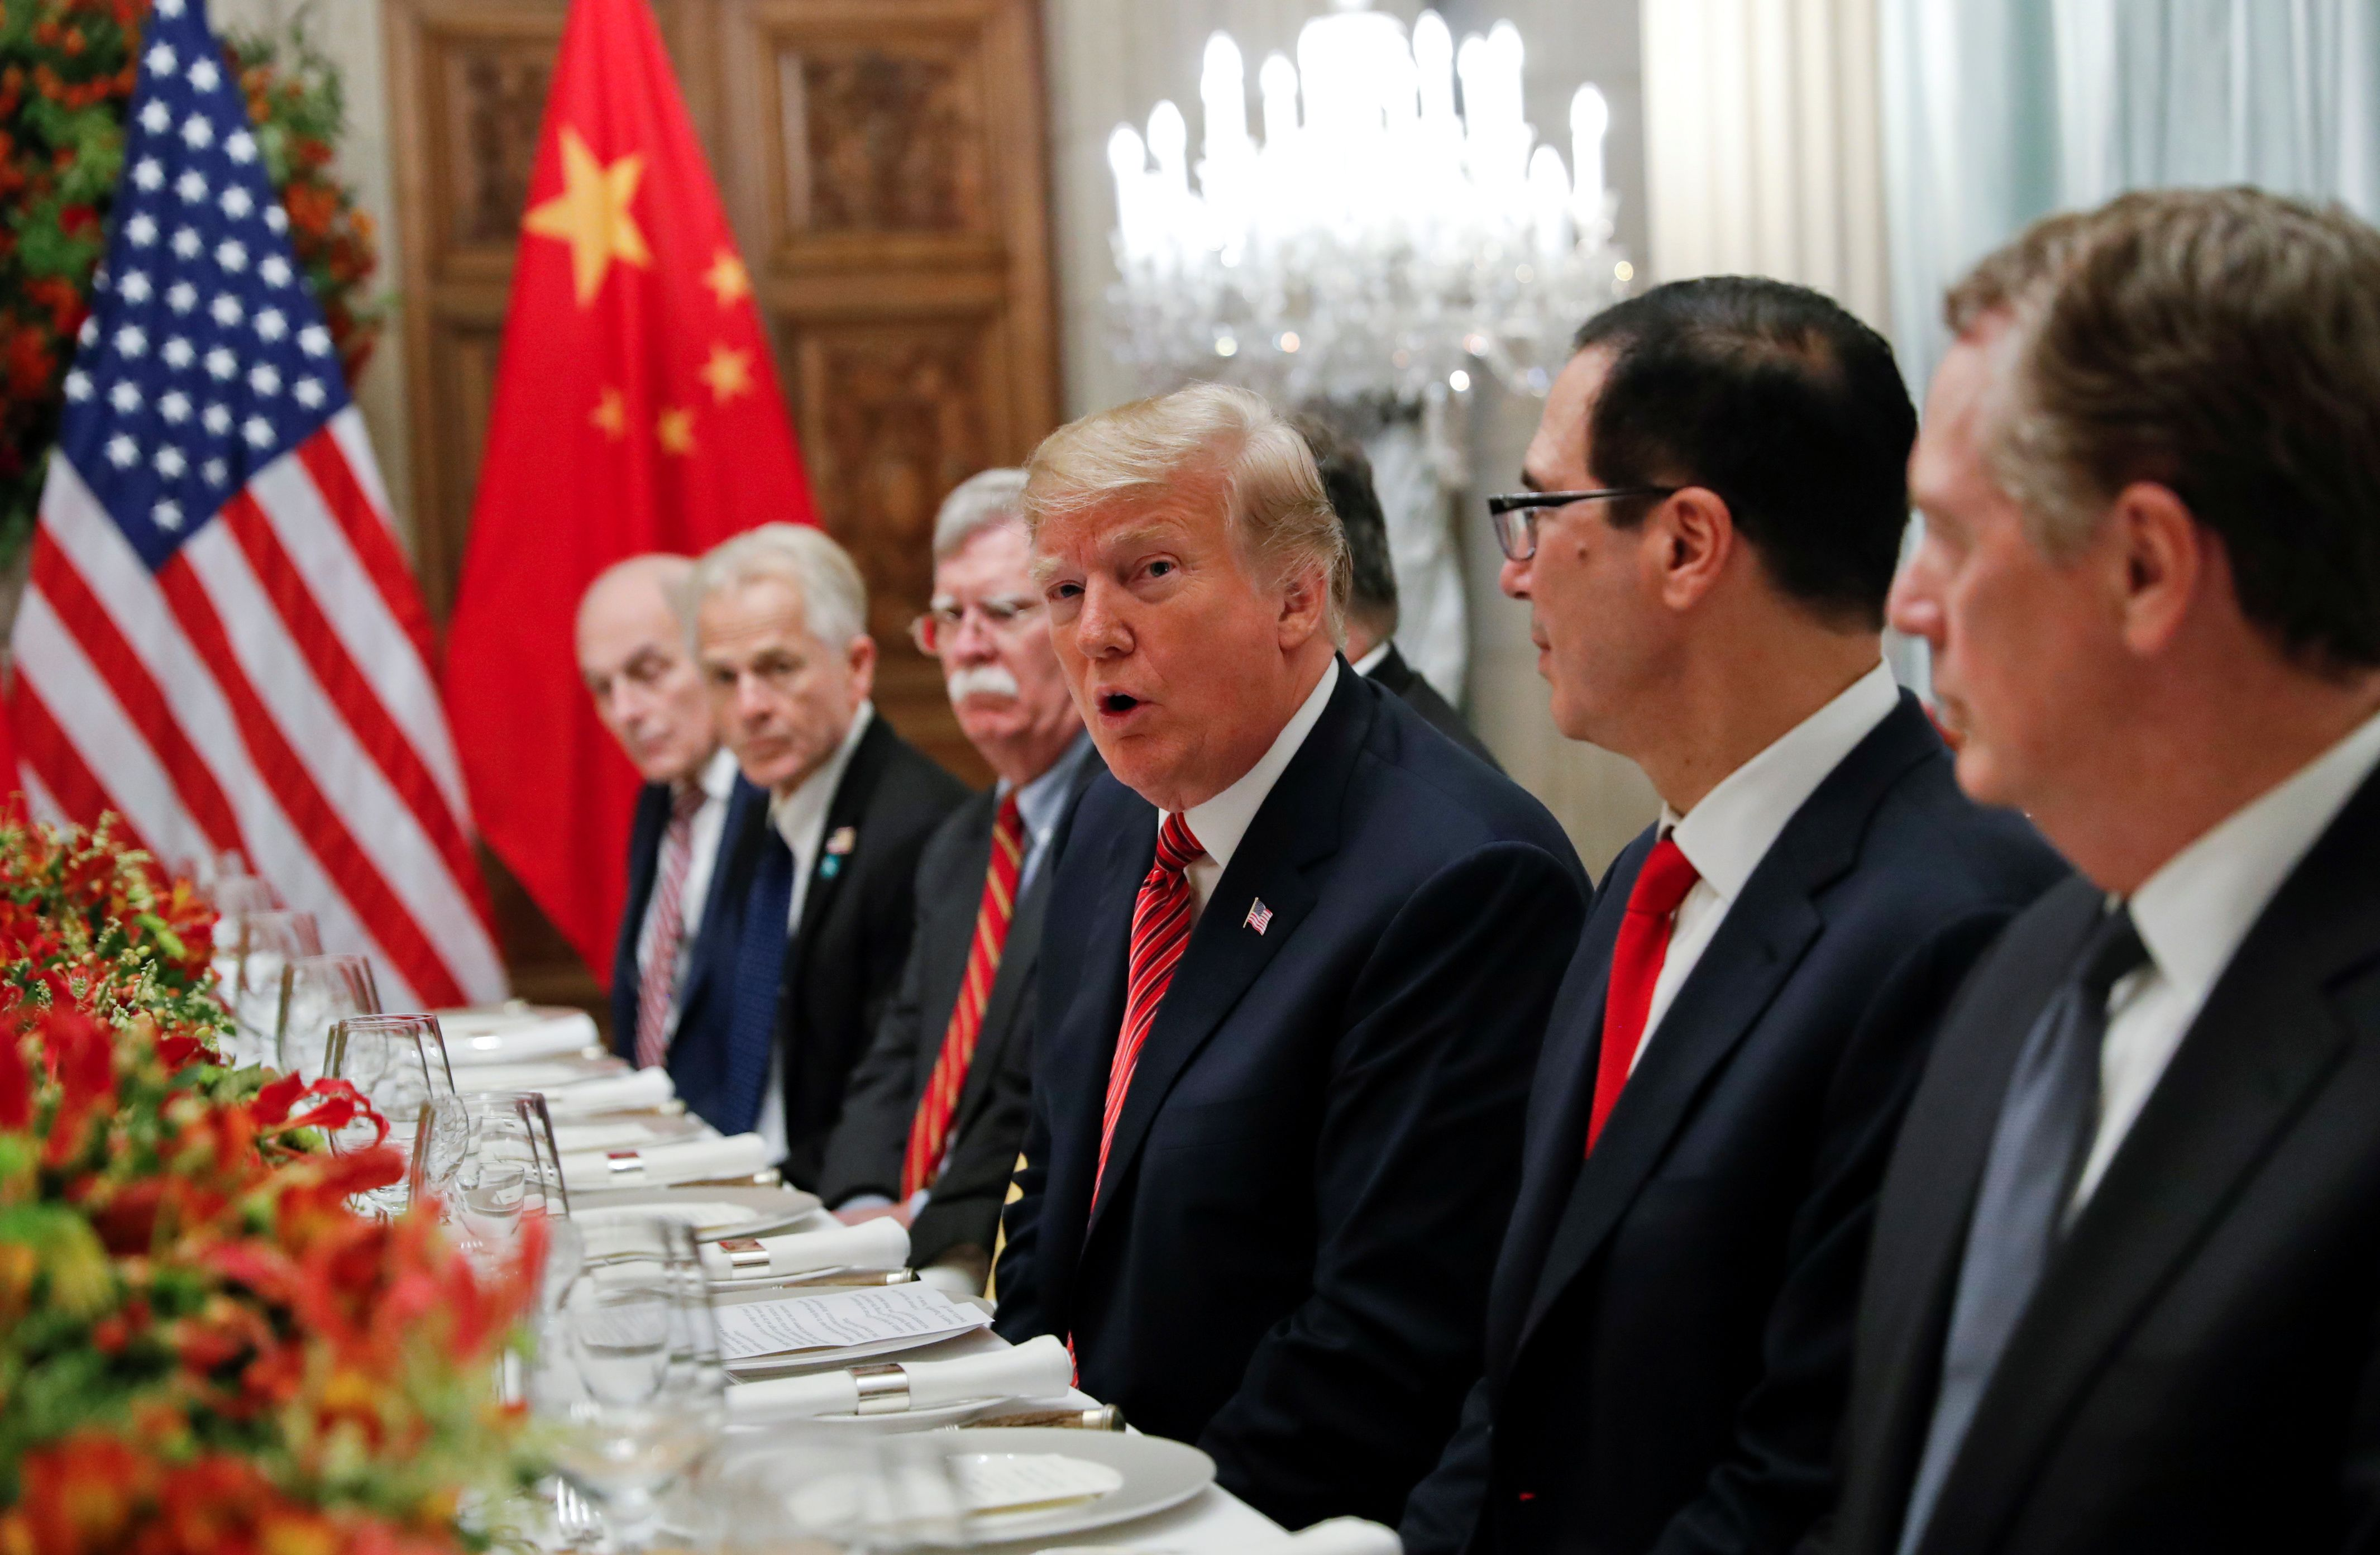 US trade set to impose tariffs on another $300B of Chinese imports